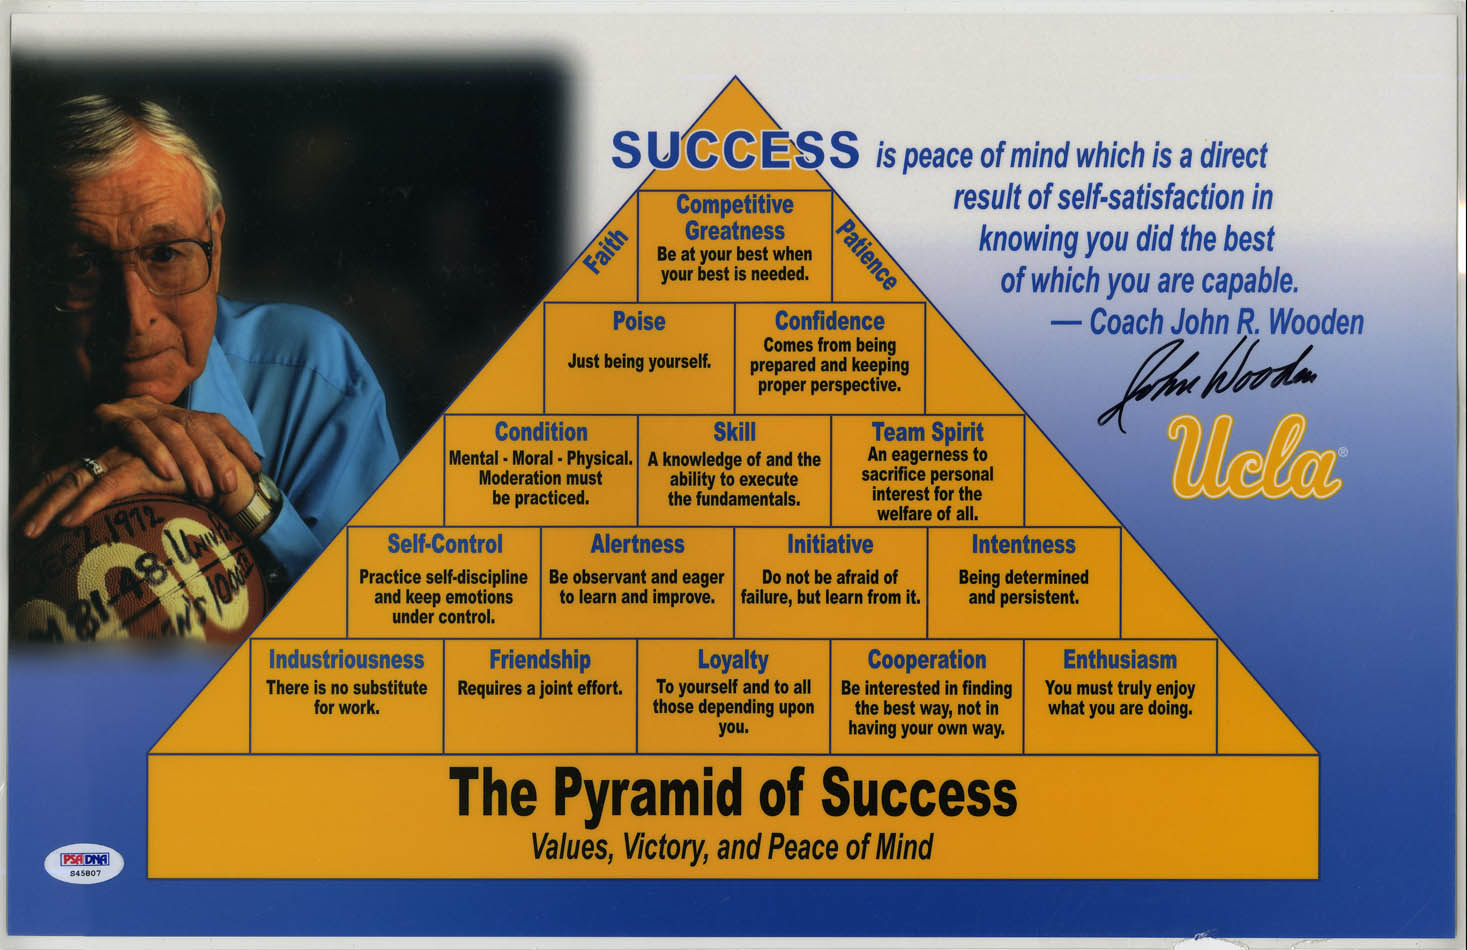 photograph about John Wooden Pyramid of Success Printable named John Wood Pyramid Of Achievements Poster - 12 months of New Drinking water